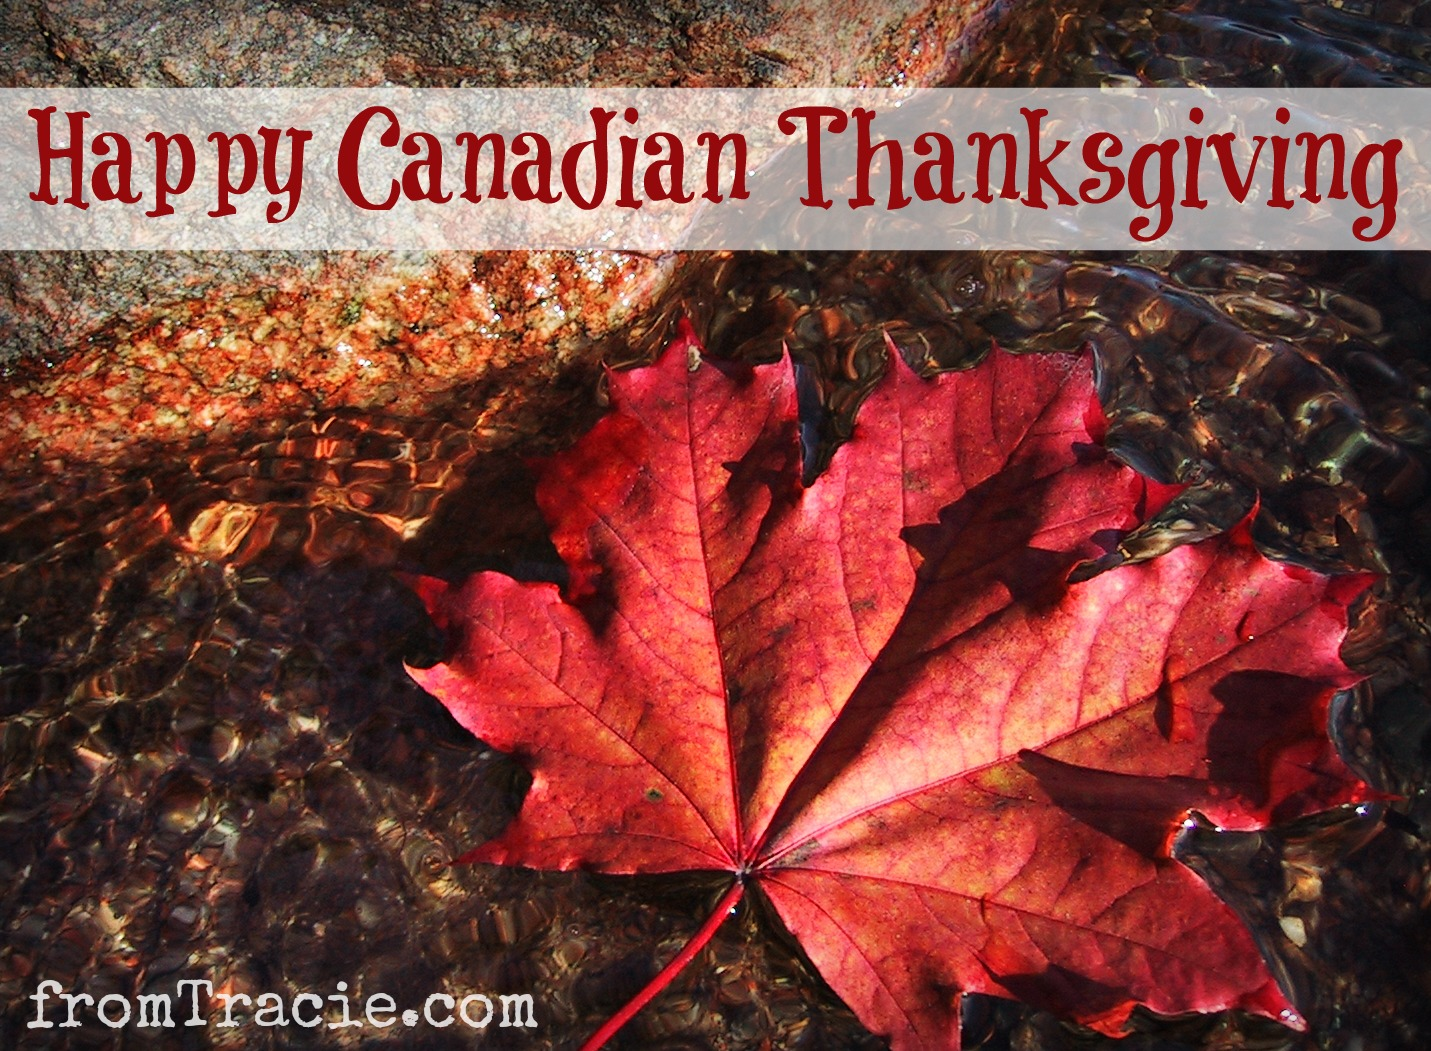 When is canadian thanksgiving 2013